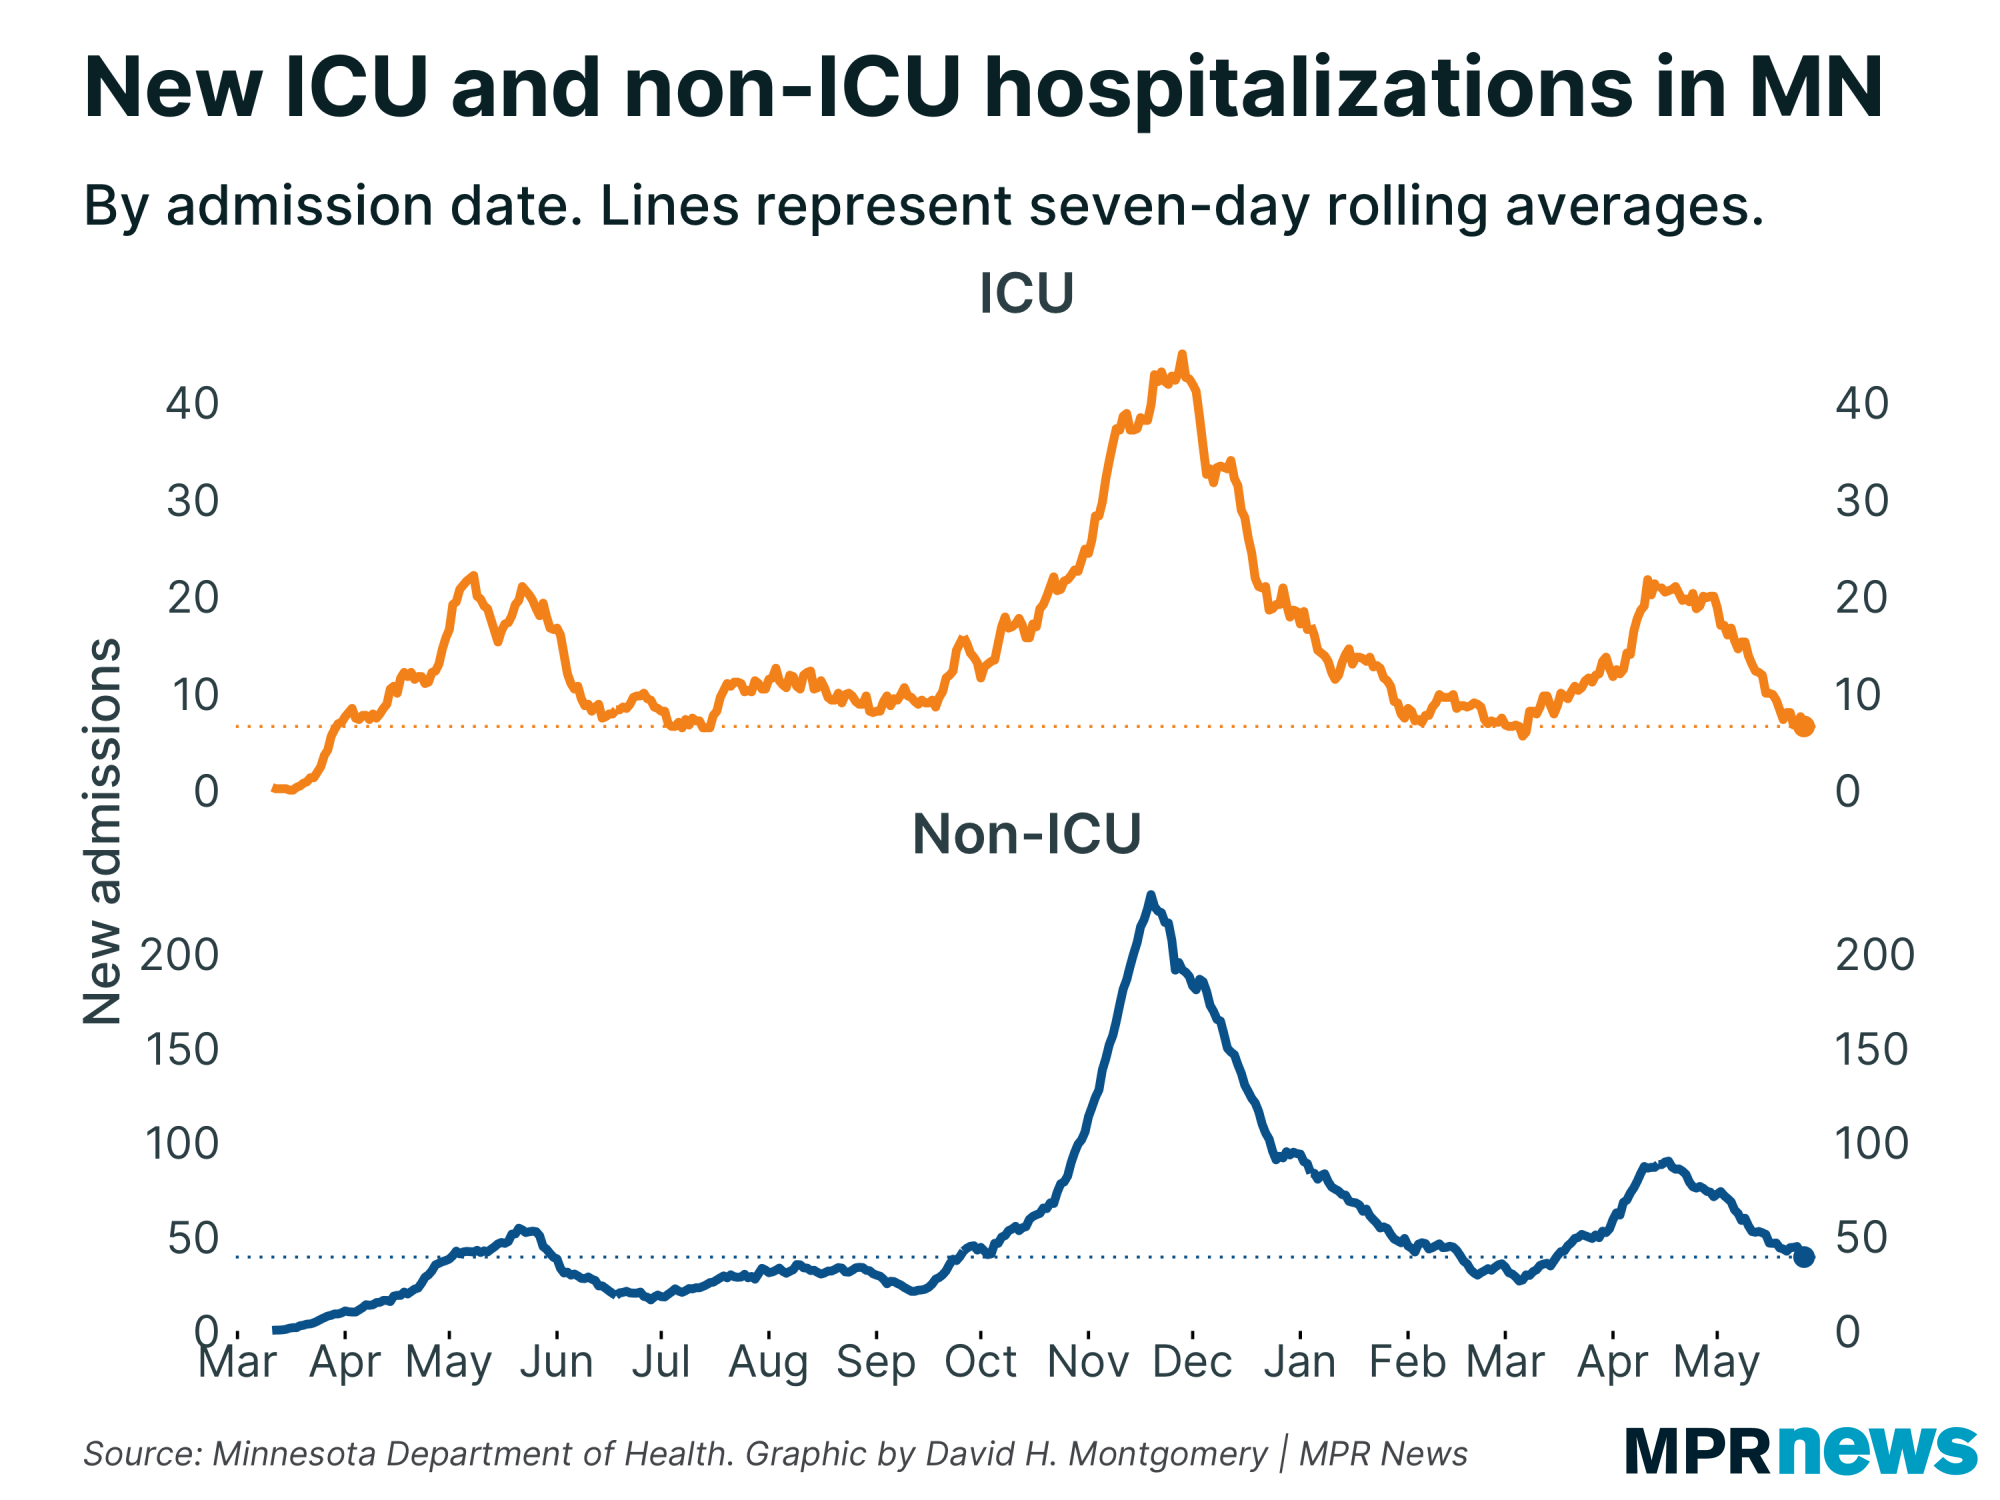 Graph showing new and non-ICU COVID-19 hospitalizations